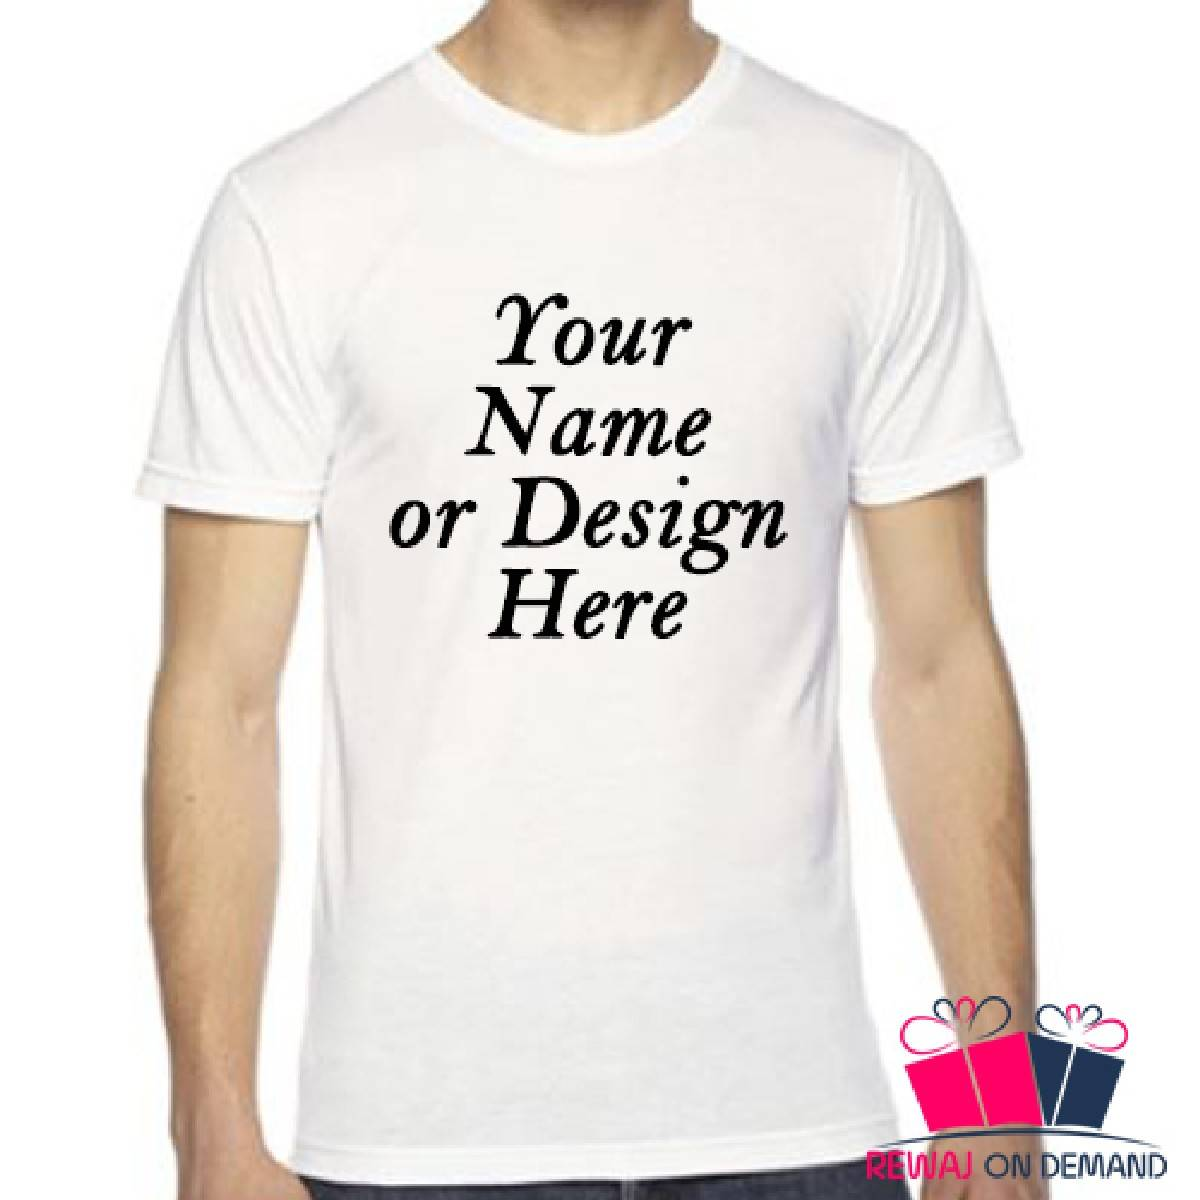 Custom Tee Shirts, Customize Picture Shirt, Customize Design Shirt, Personalized Tshirt, Design Your Own Print Text Picture or Image Half Sleeves White Shirt